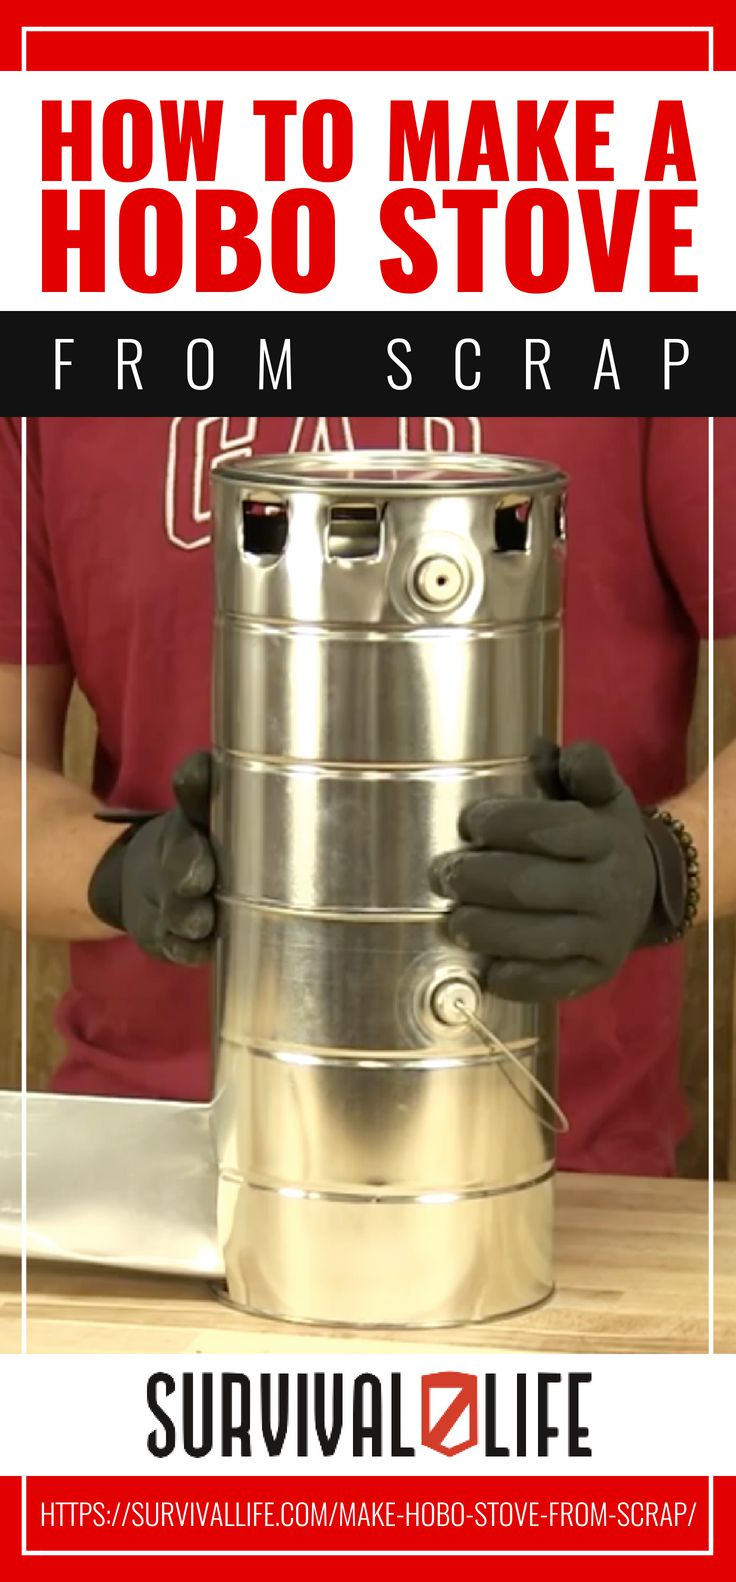 Placard | [Video Quick Tip] How To Make A Hobo Stove From Scrap